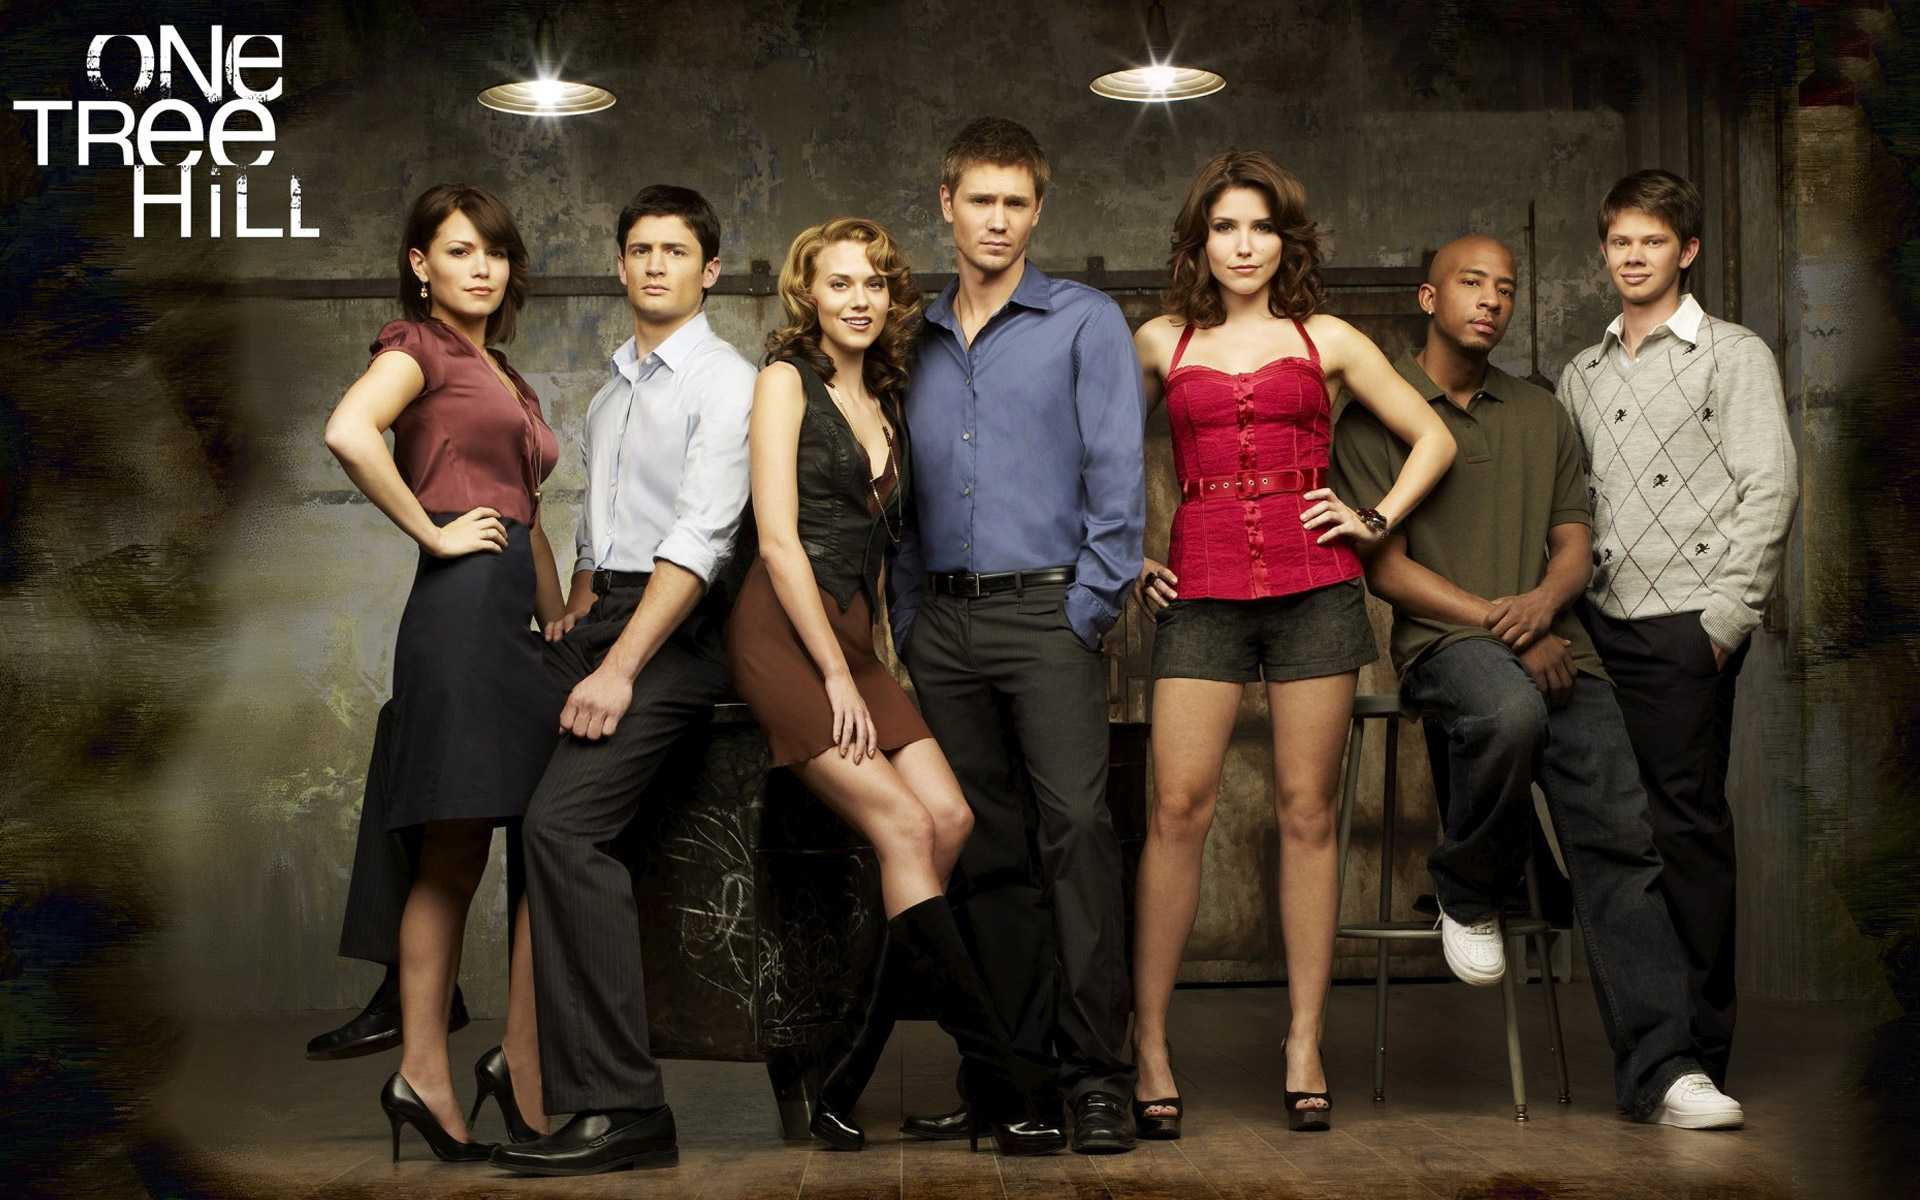 """One Tree Hill"": The legacy continues"